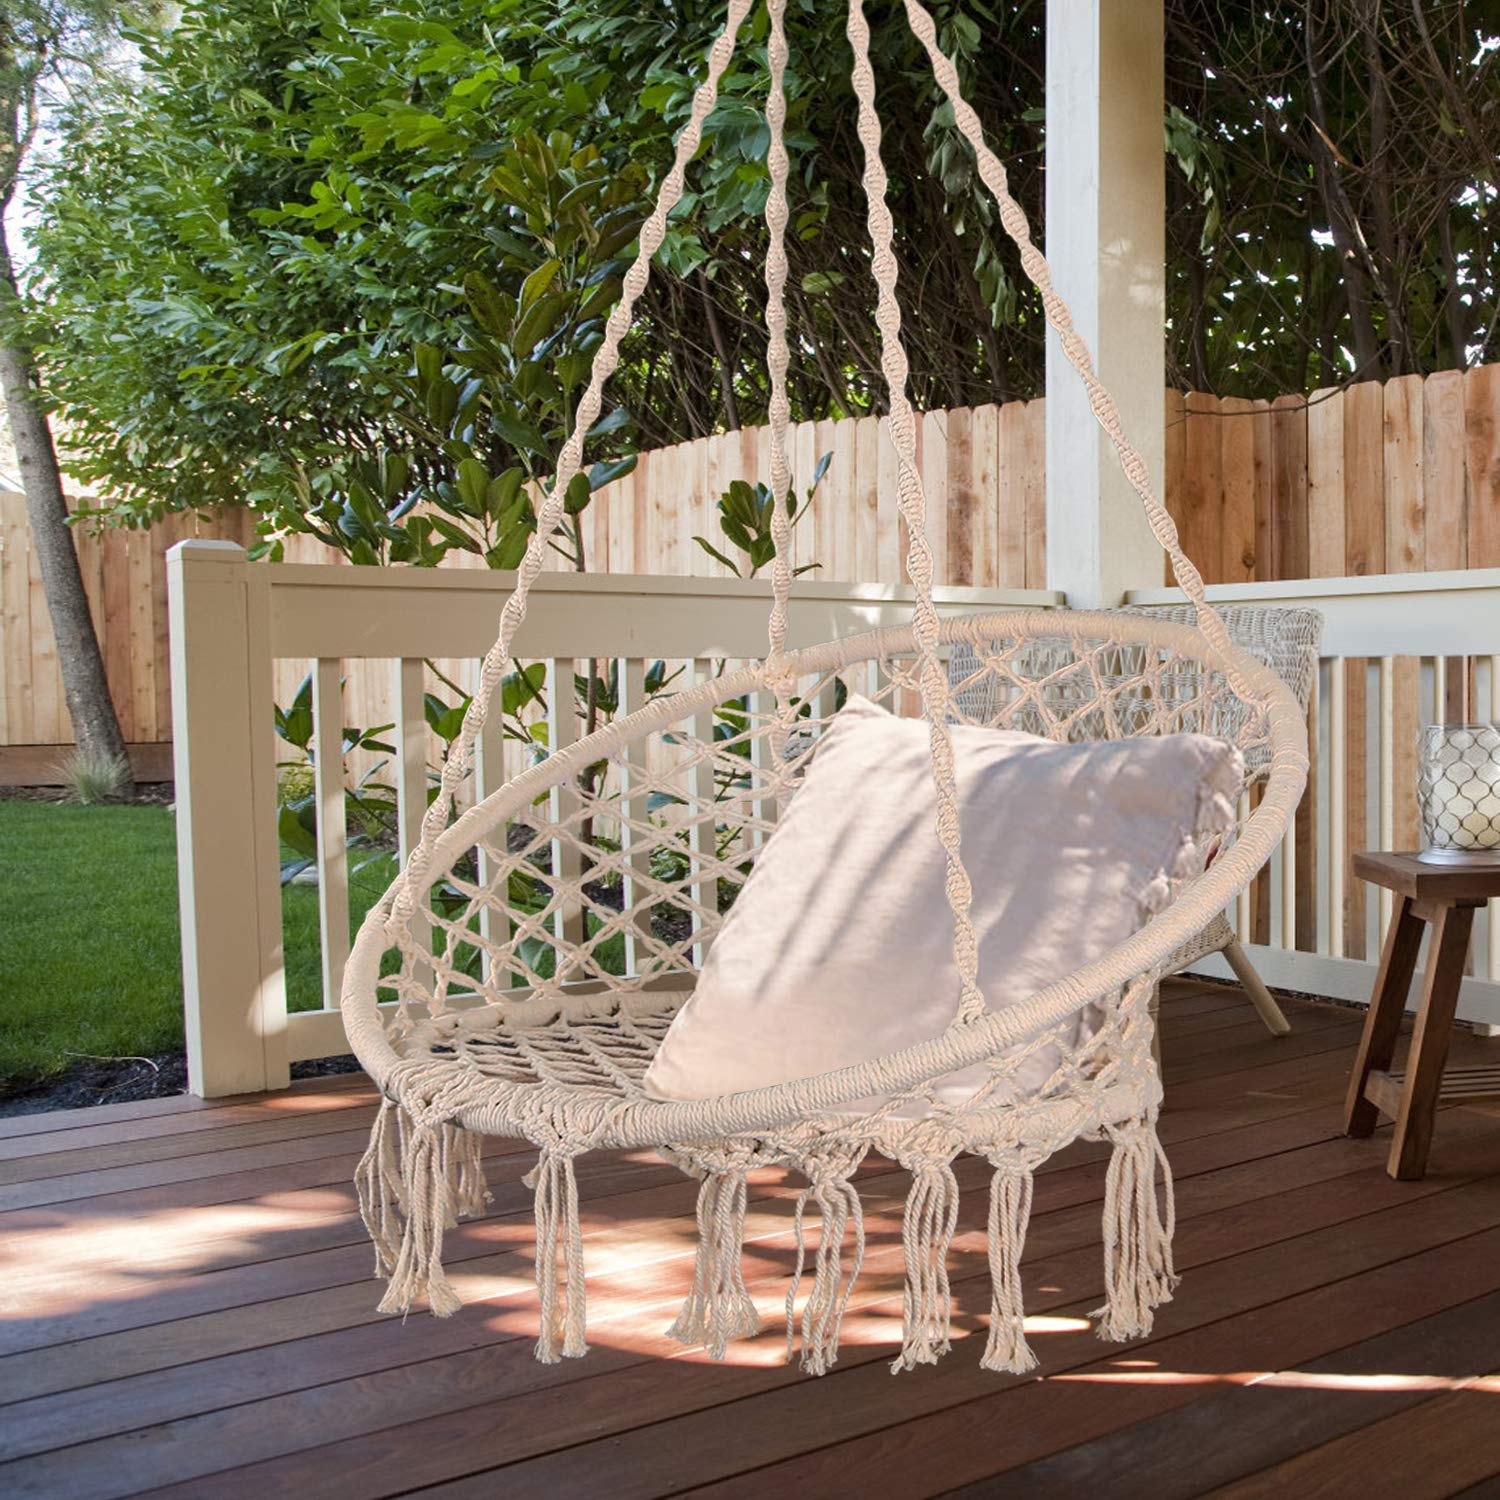 Bathonly Hammock Chair Macrame Swing,100% Handmade Knitted Hanging Swing Chair,Perfect for Indoor/Outhdoor,B edroom, Yard - 231lb Capacity